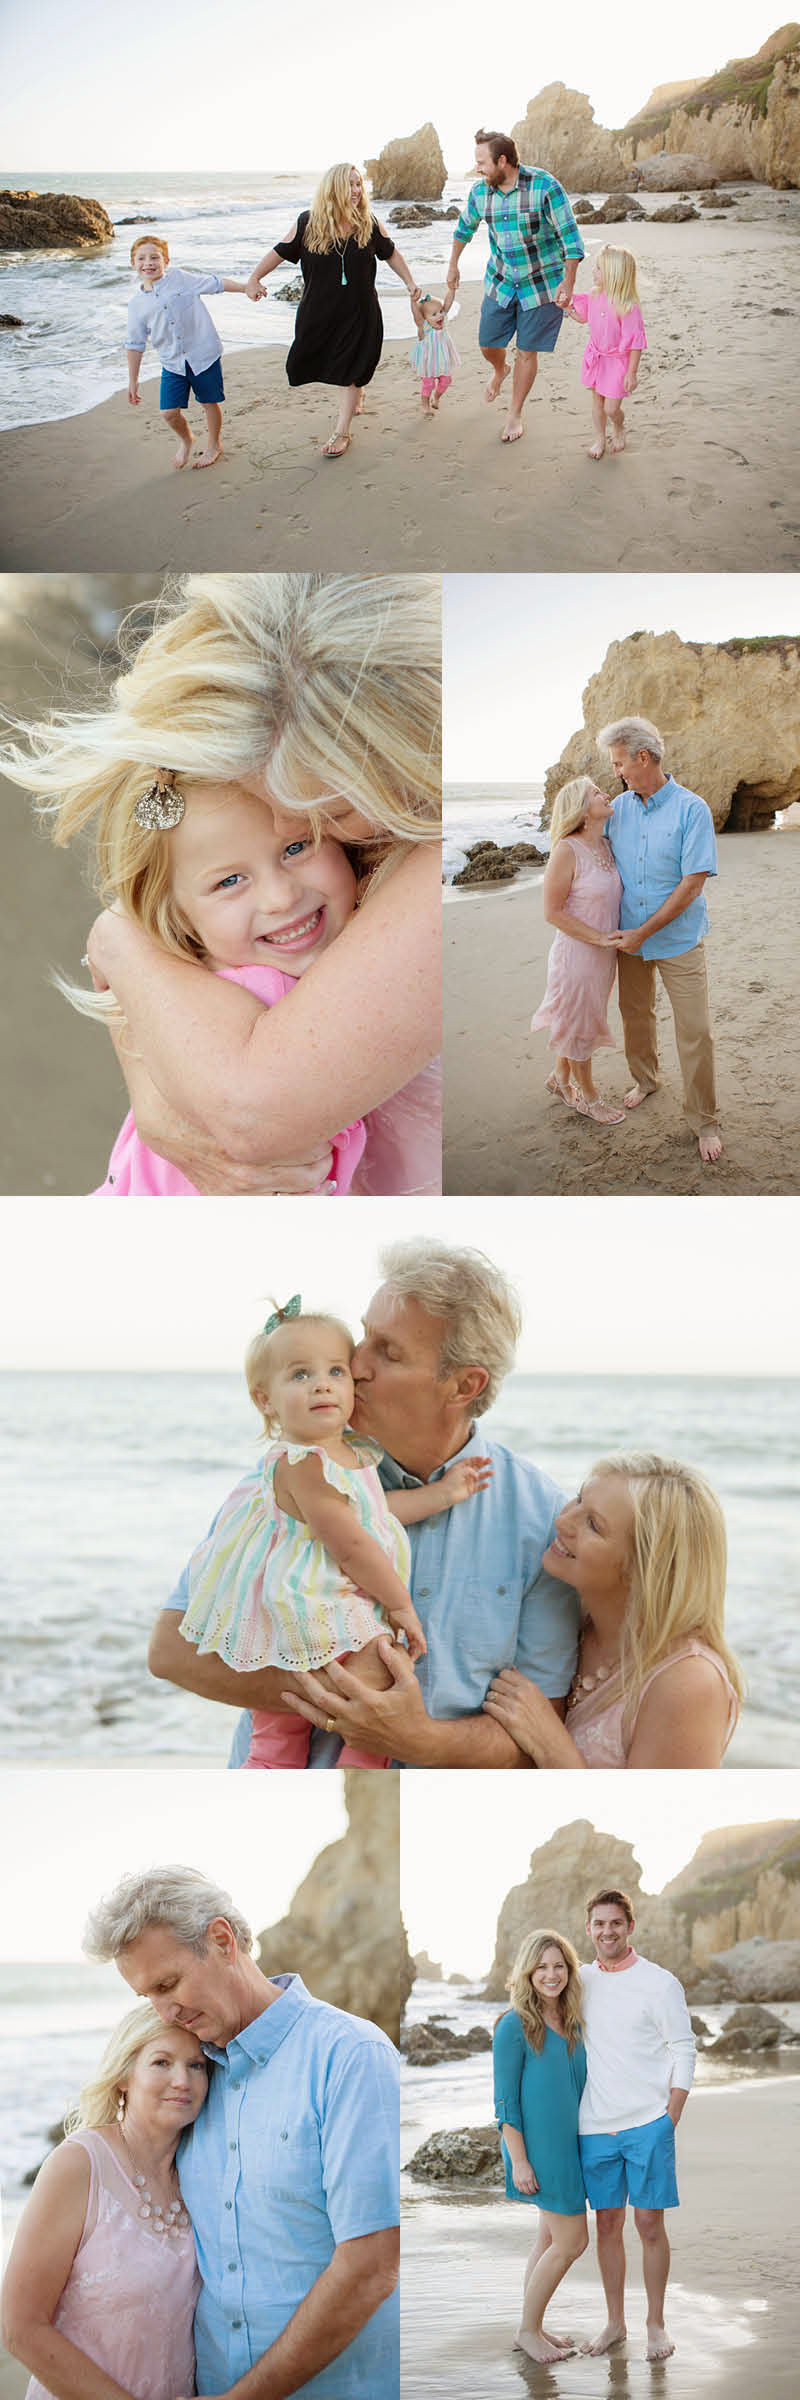 southern california Beach family photographer